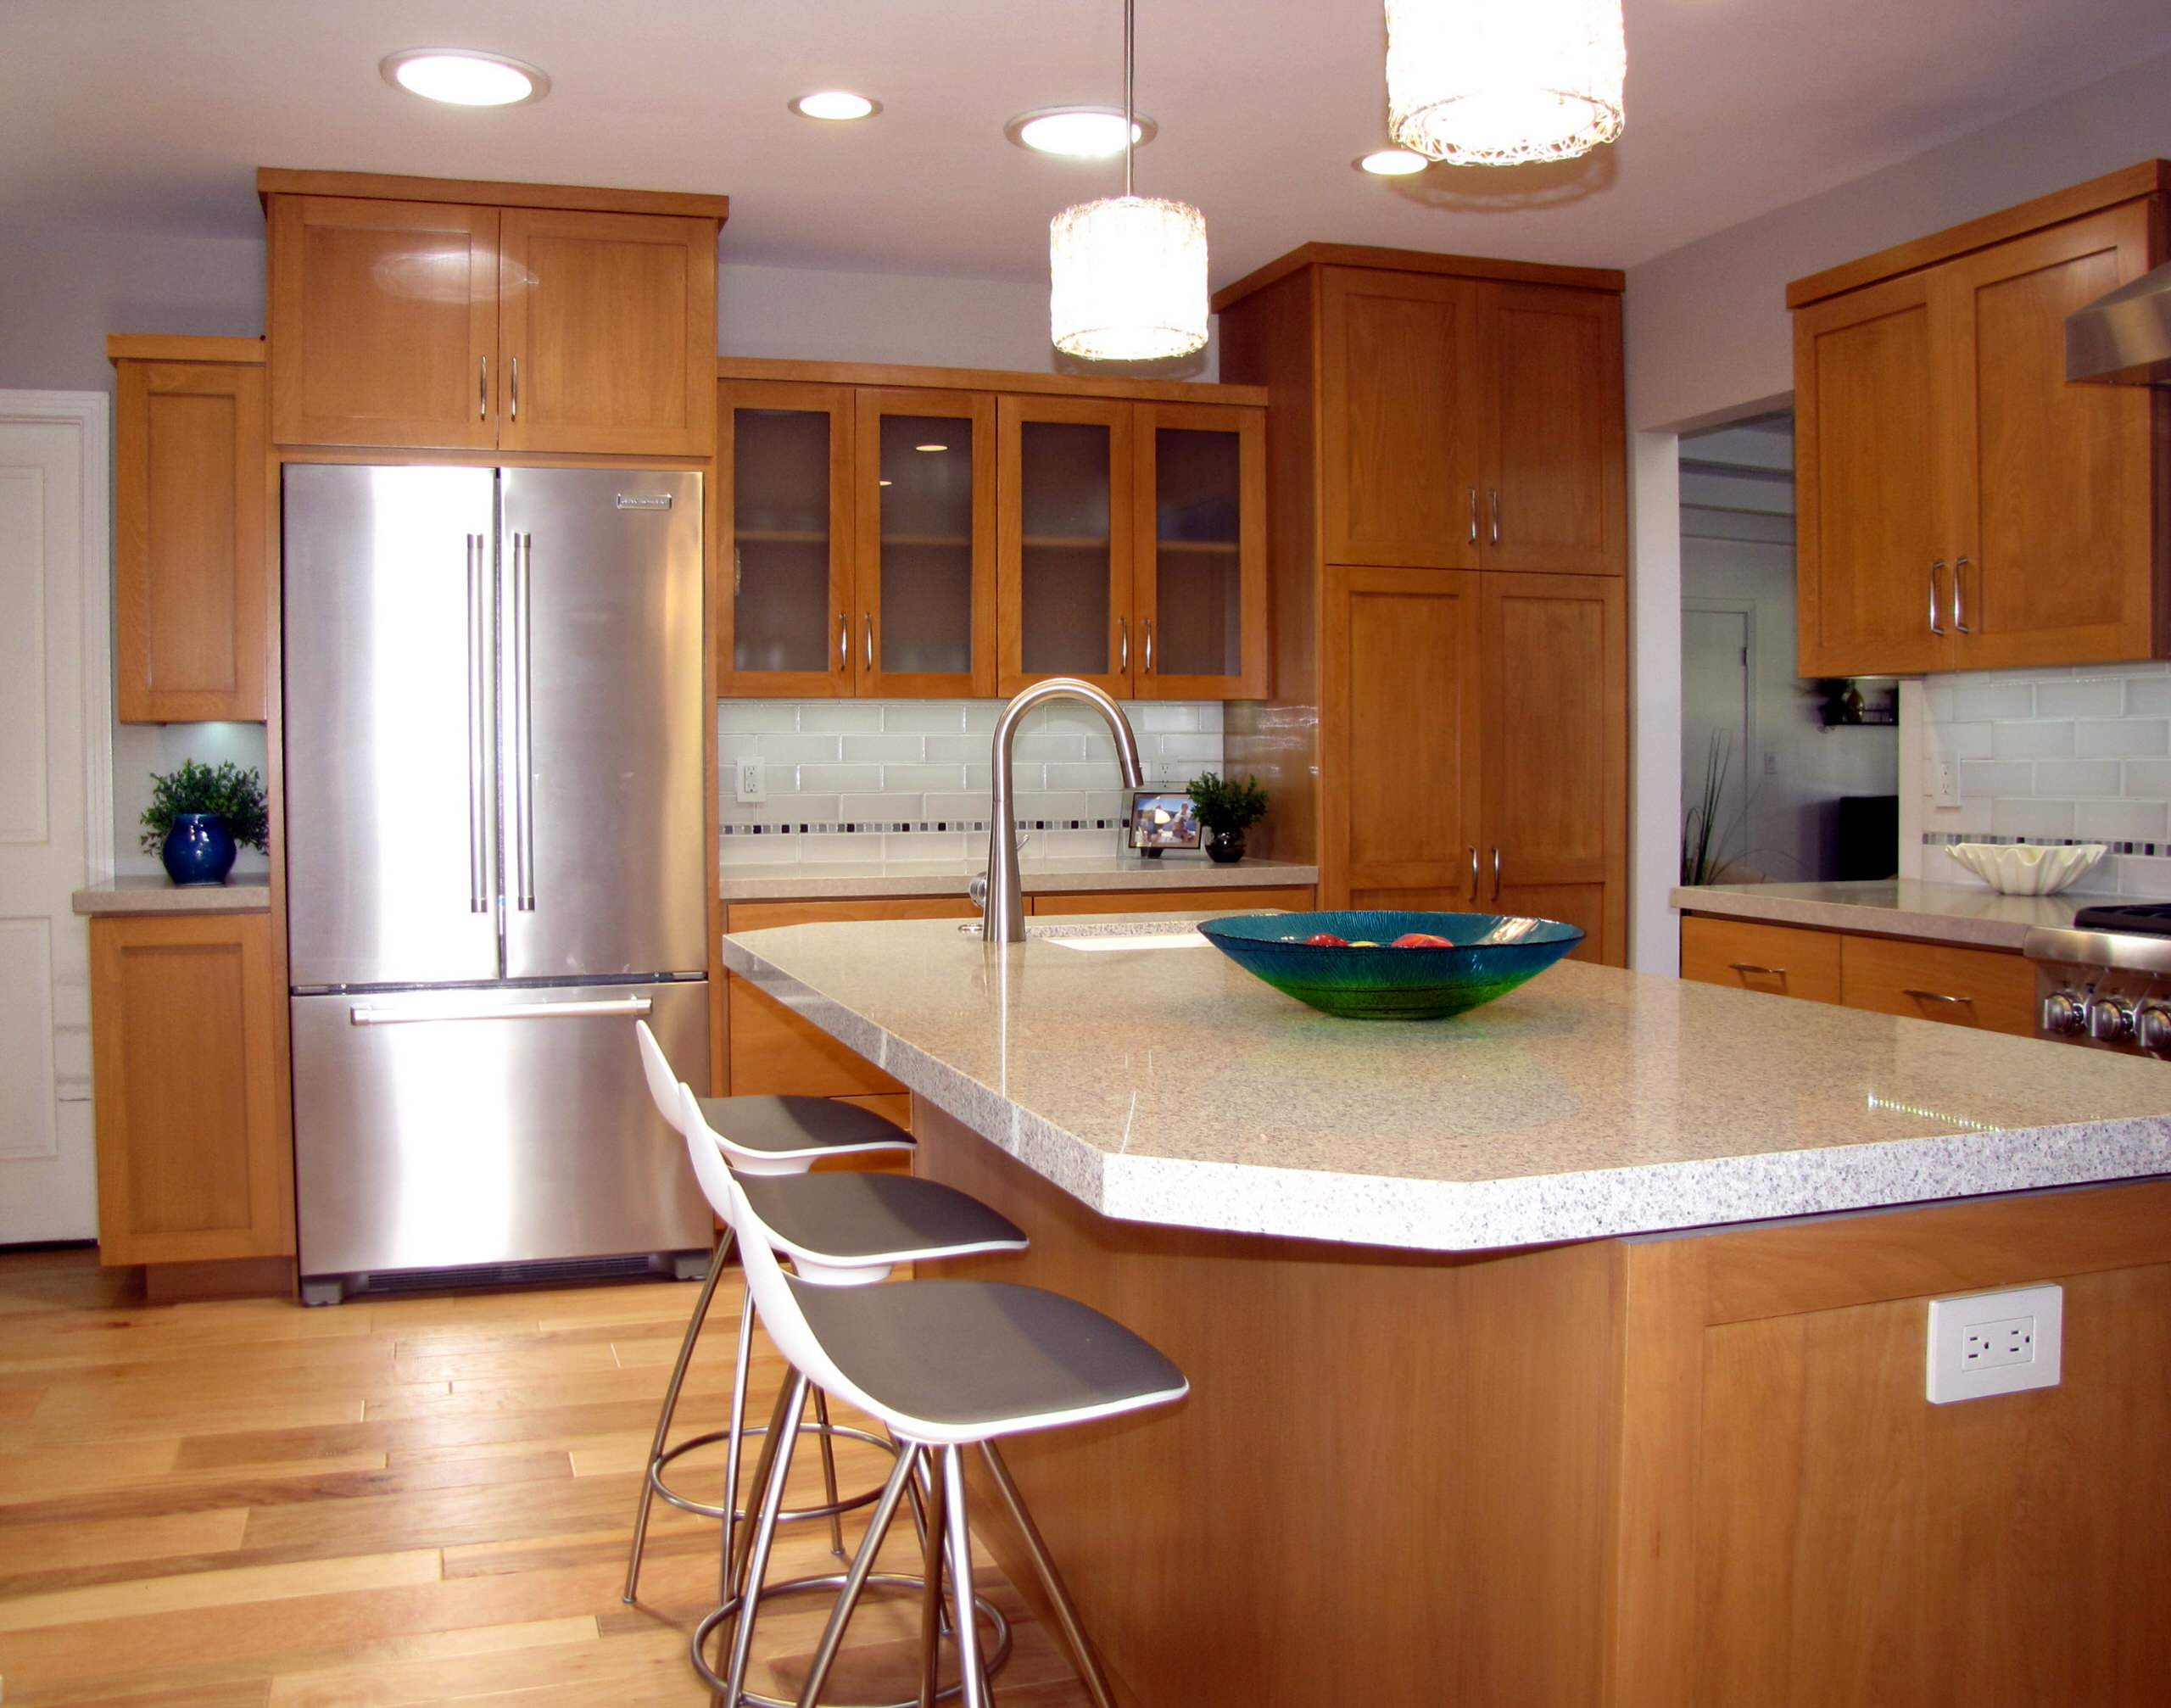 A kitchen for our century